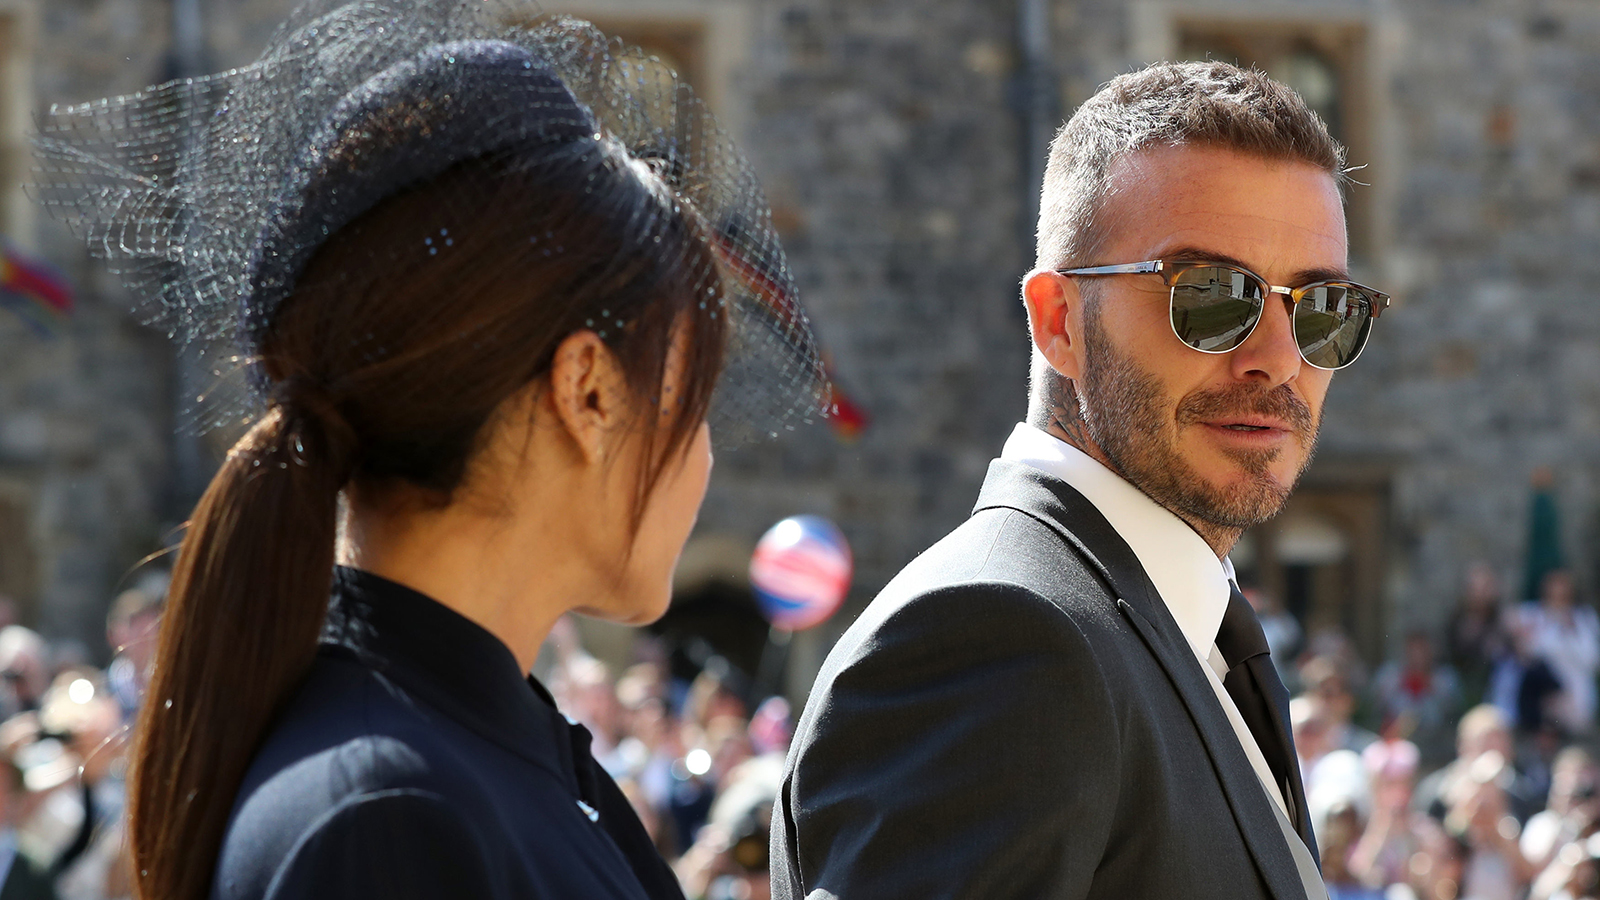 What the Best-dressed Blokes at the Royal Wedding Can Teach Us About Style